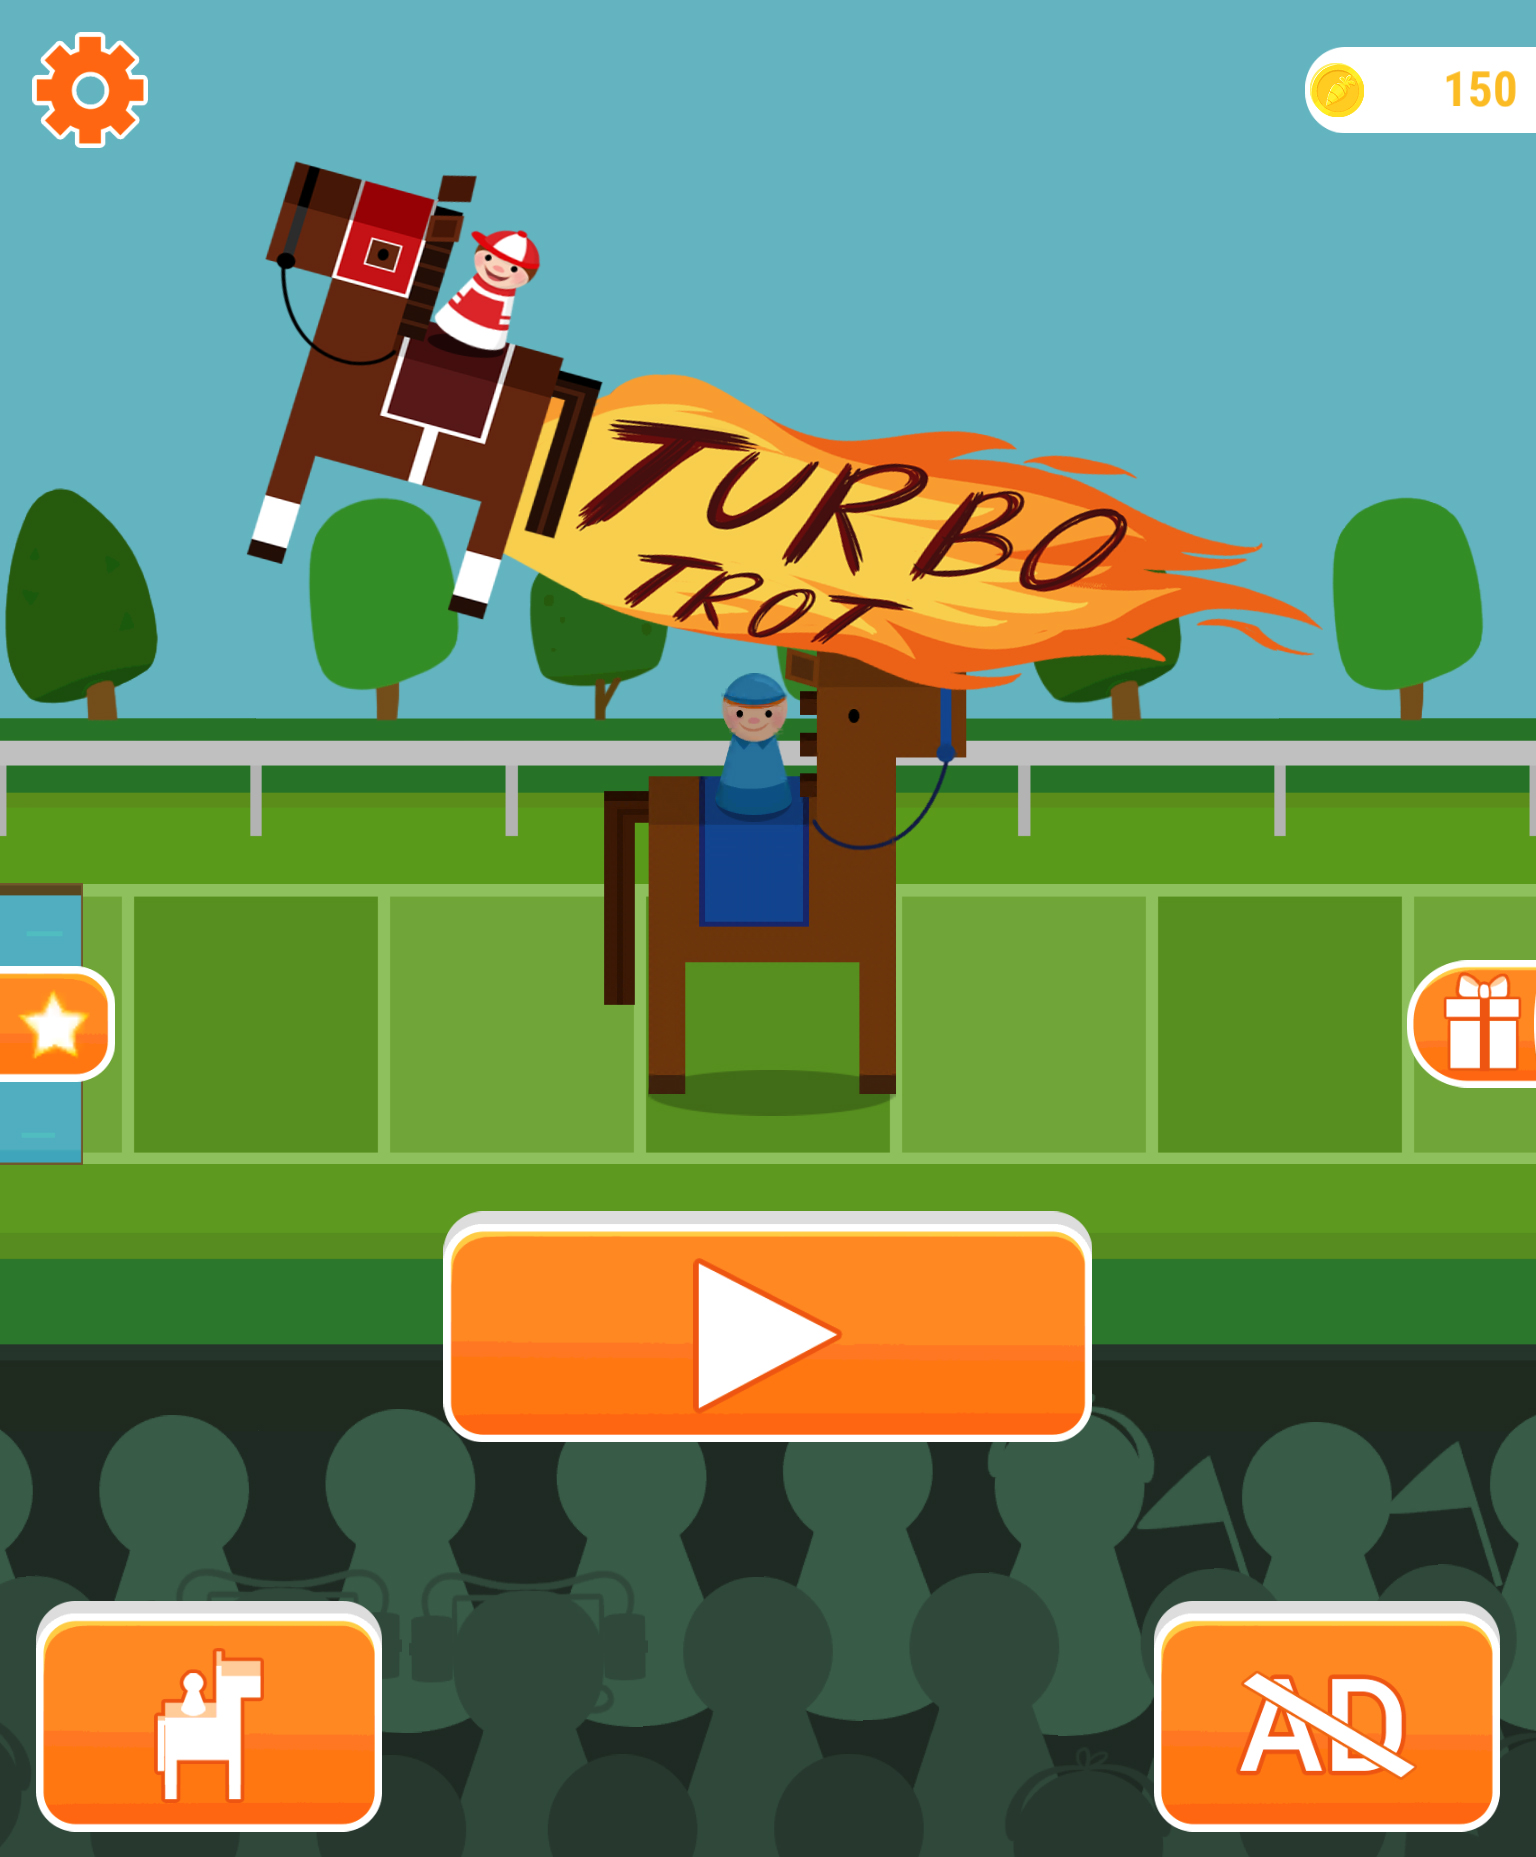 Get ready for some fun horse racing action in Turbo Trot